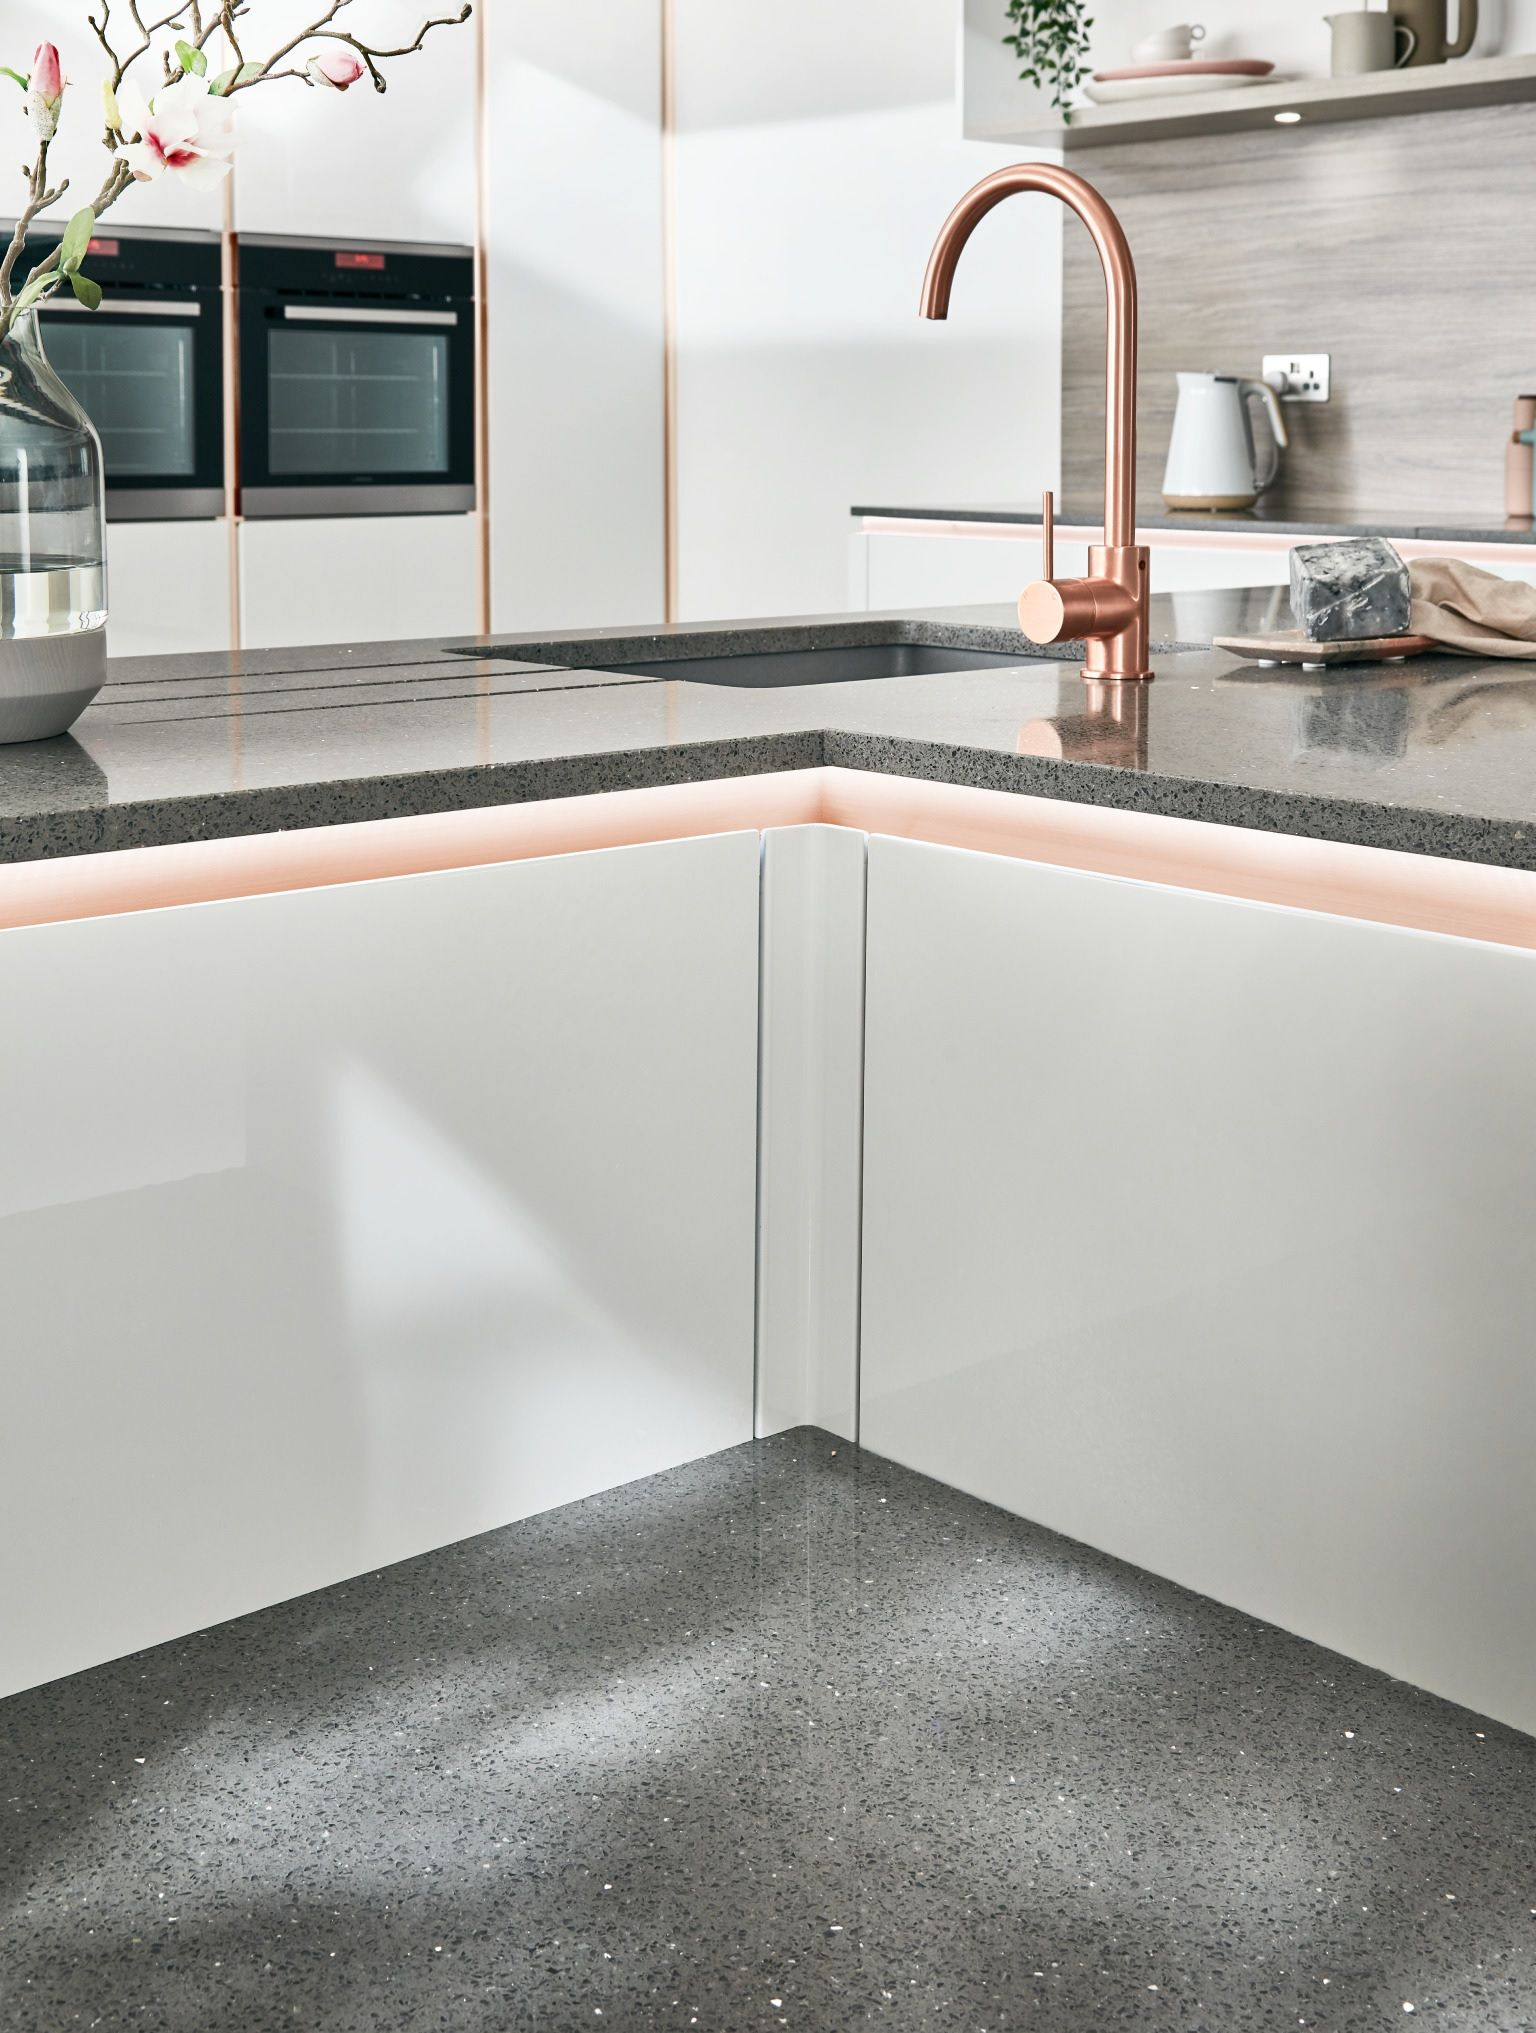 Discover the latest kitchen trends Latest kitchen trends